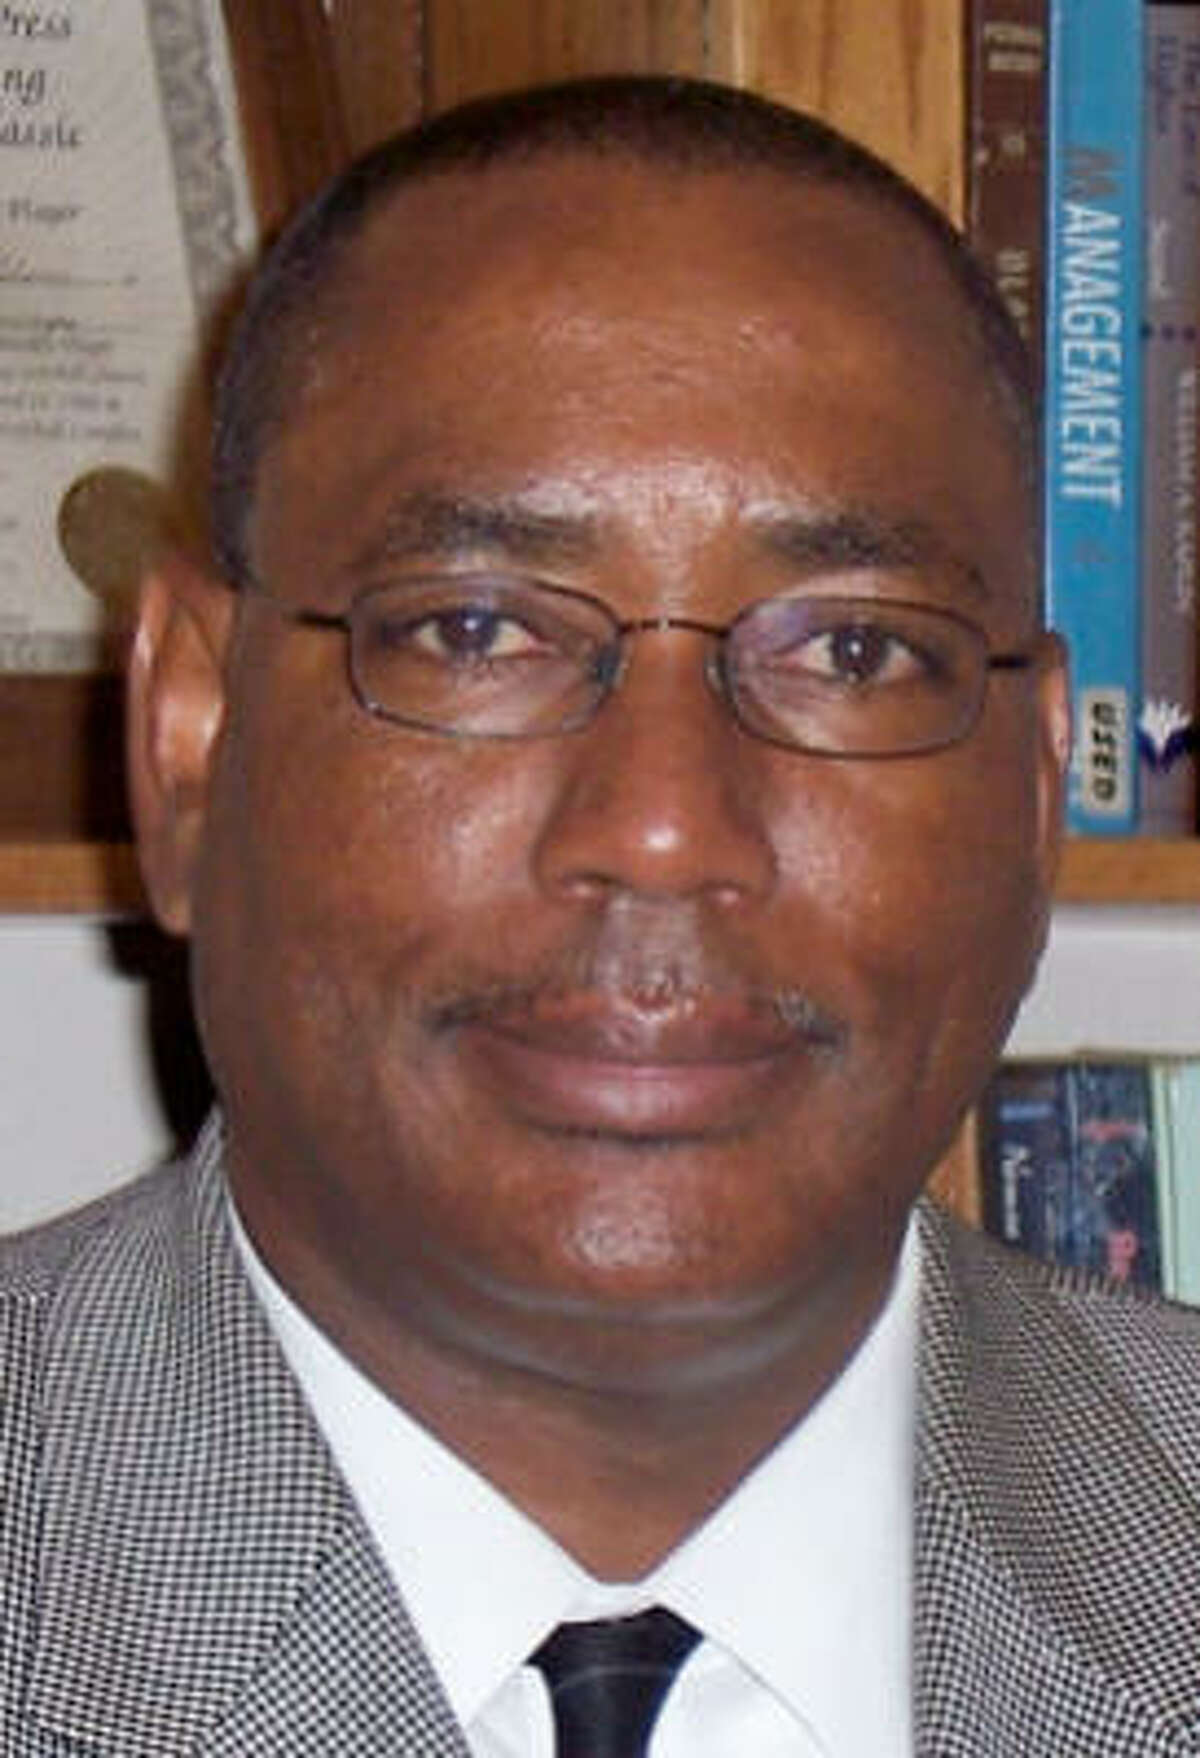 Prairie View A&M associate professor Clement Glenn said he knows he cannot win unless he builds a network of connections through his alumni associations and community activities and former students.